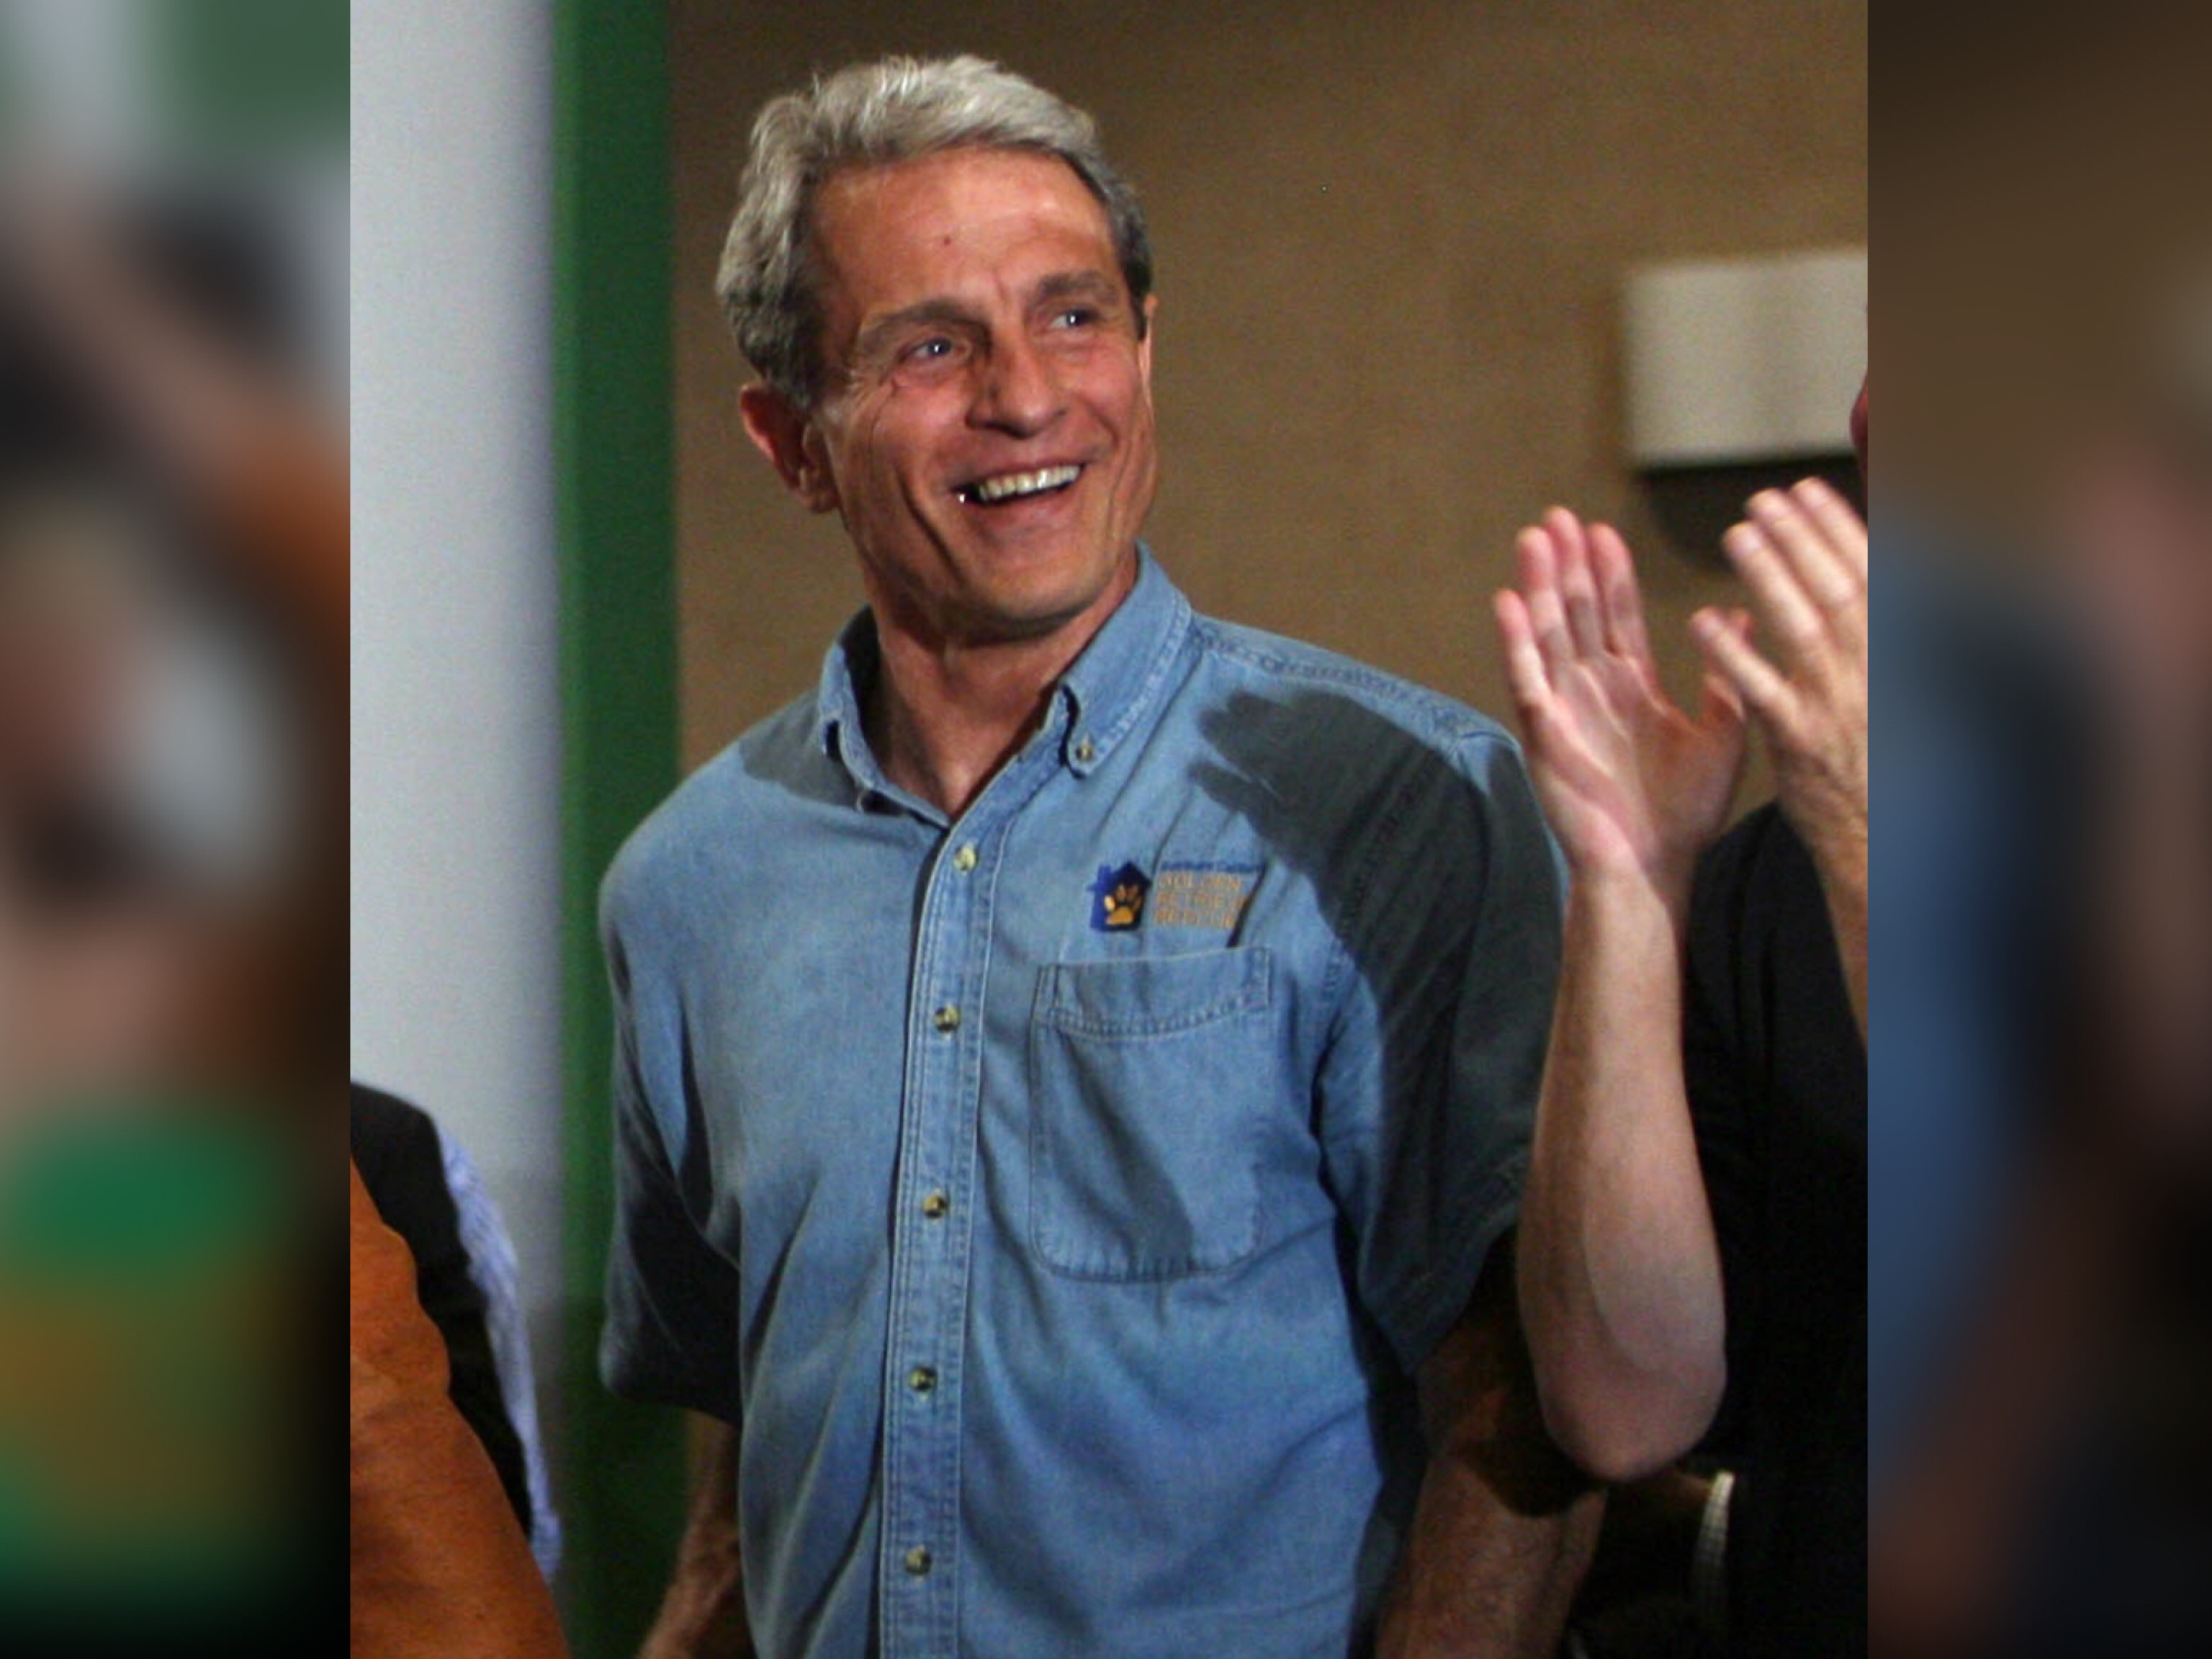 Man Found Deceased At The Home Of Democratic Donor Ed Buck